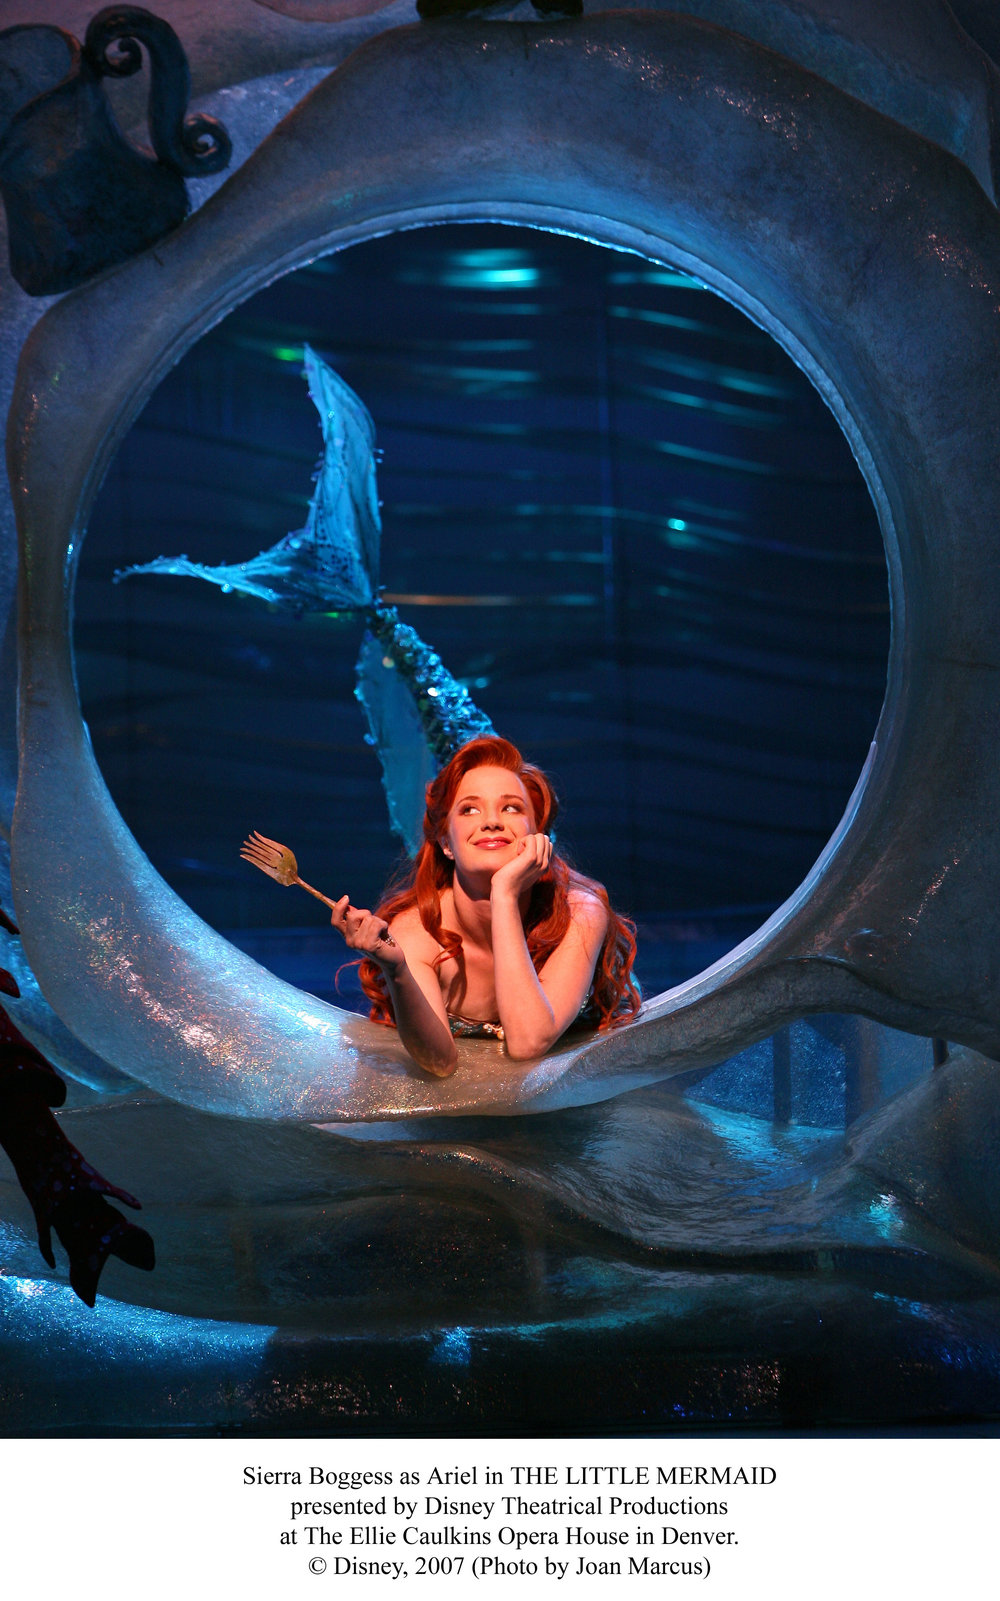 Sierra-Boggess-Little-Mermaid-Broadway-Sierra 528-X.jpg